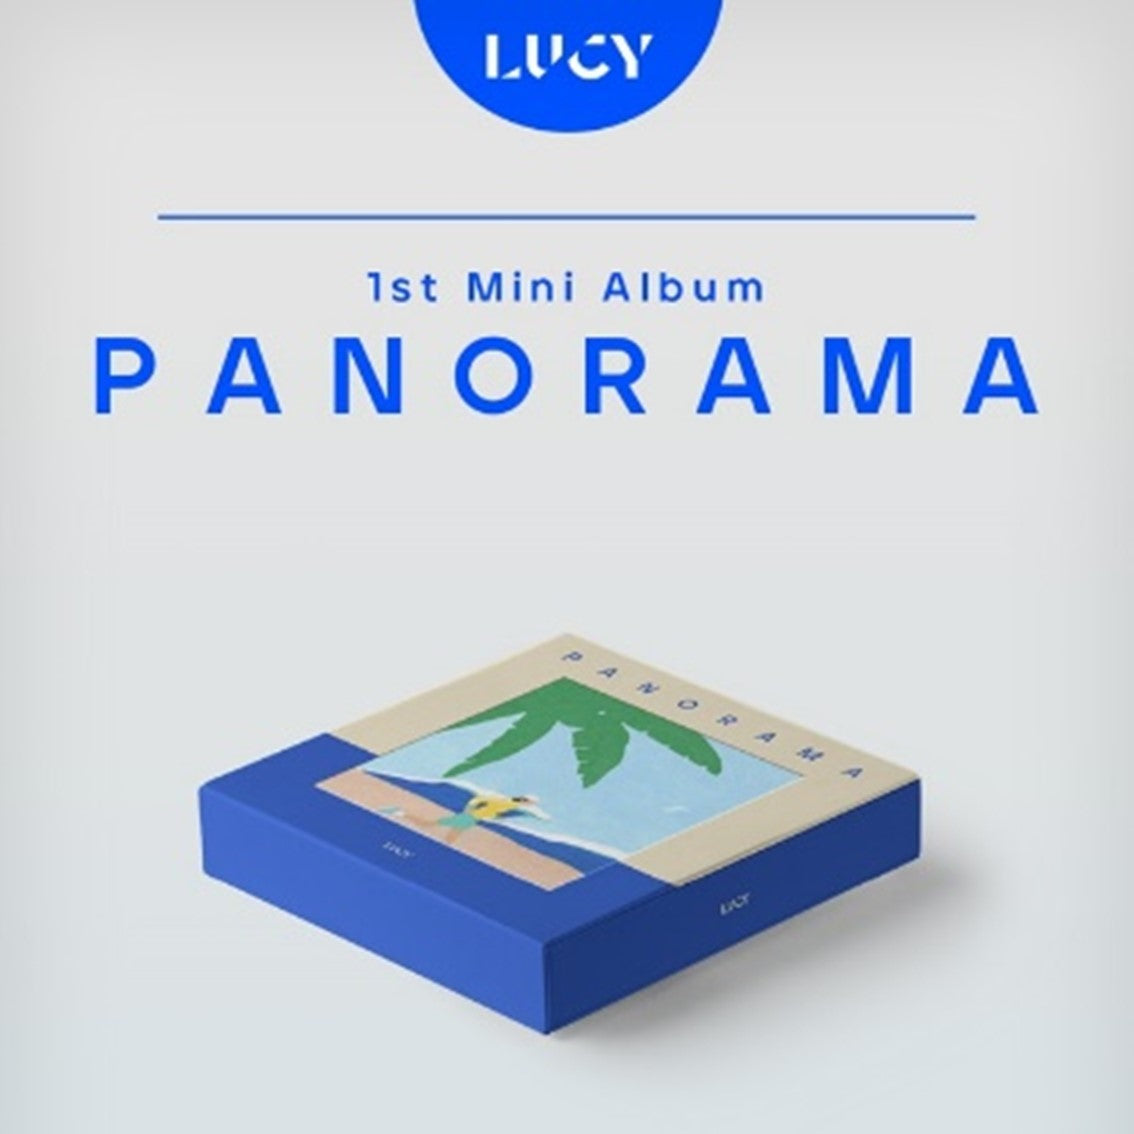 Lucy - 1st Mini Album - Panorama